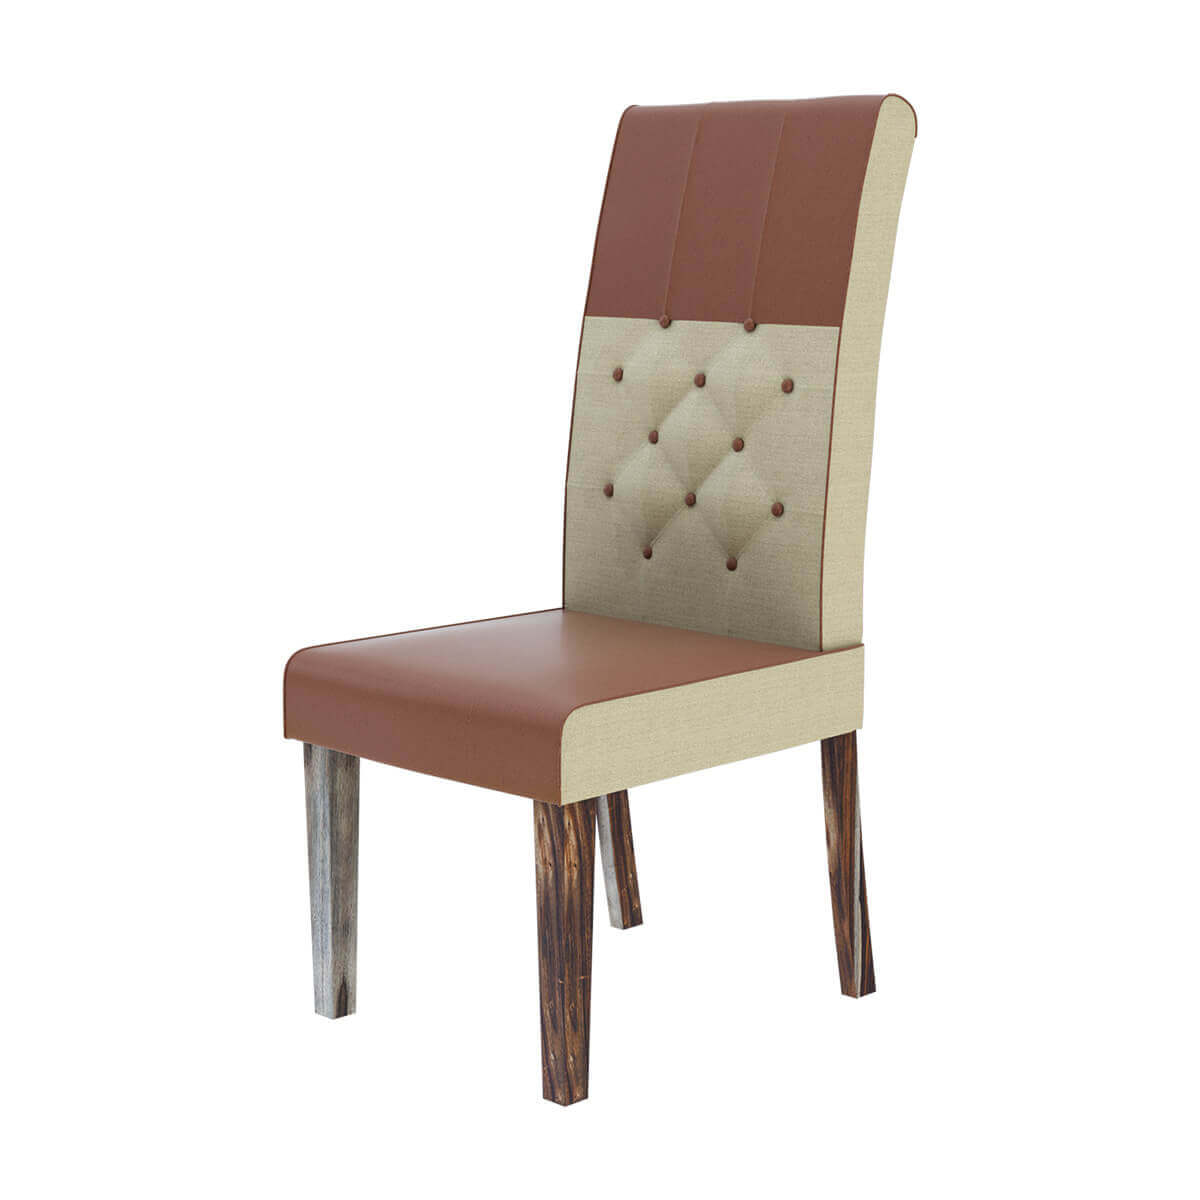 dining chairs fabric oxo high chair tray cover hosford handcrafted leather and tufted parson